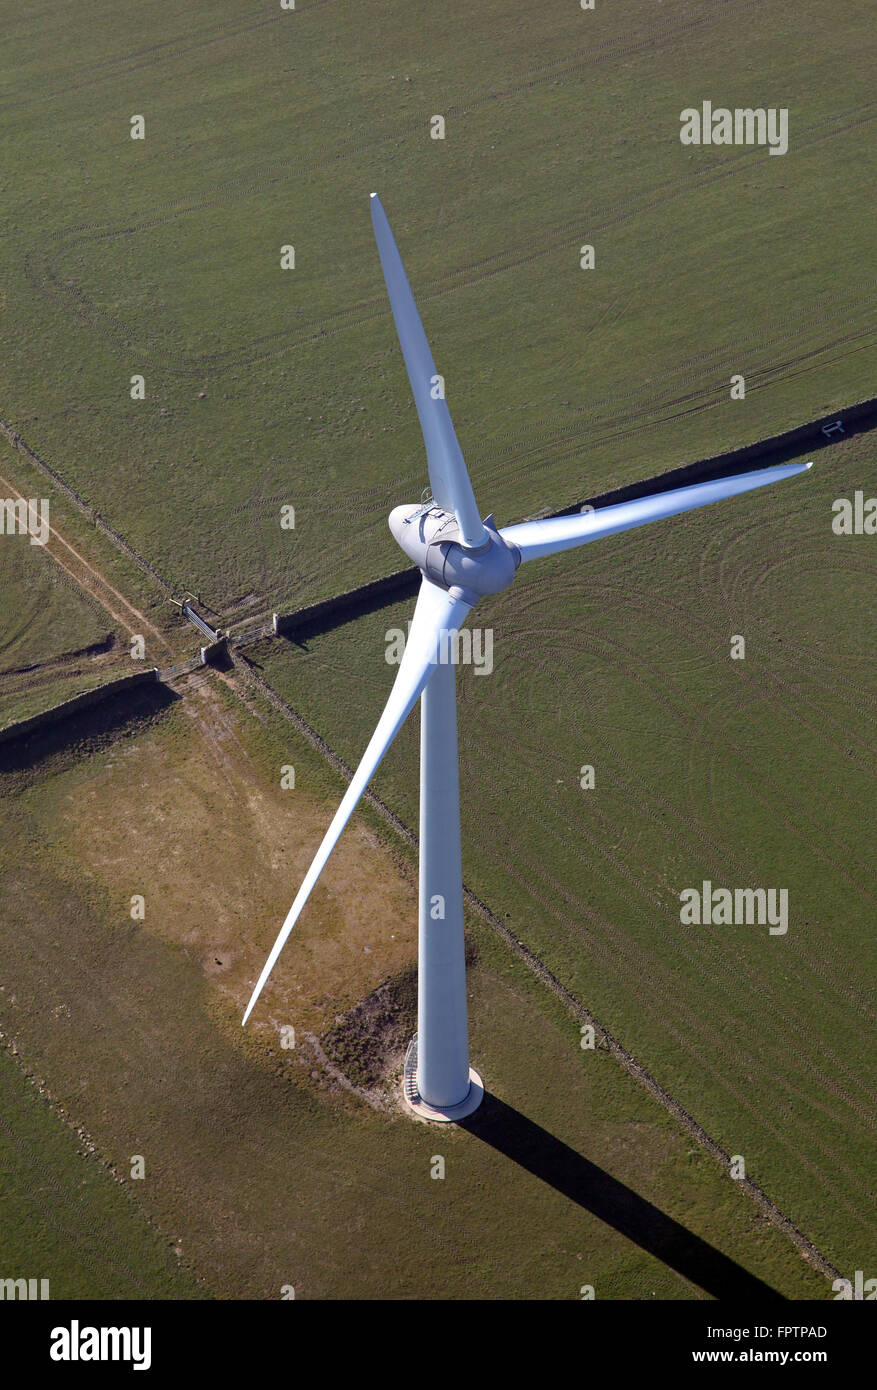 aerial view of an electricity generating wind turbine in the north of England, UK - Stock Image